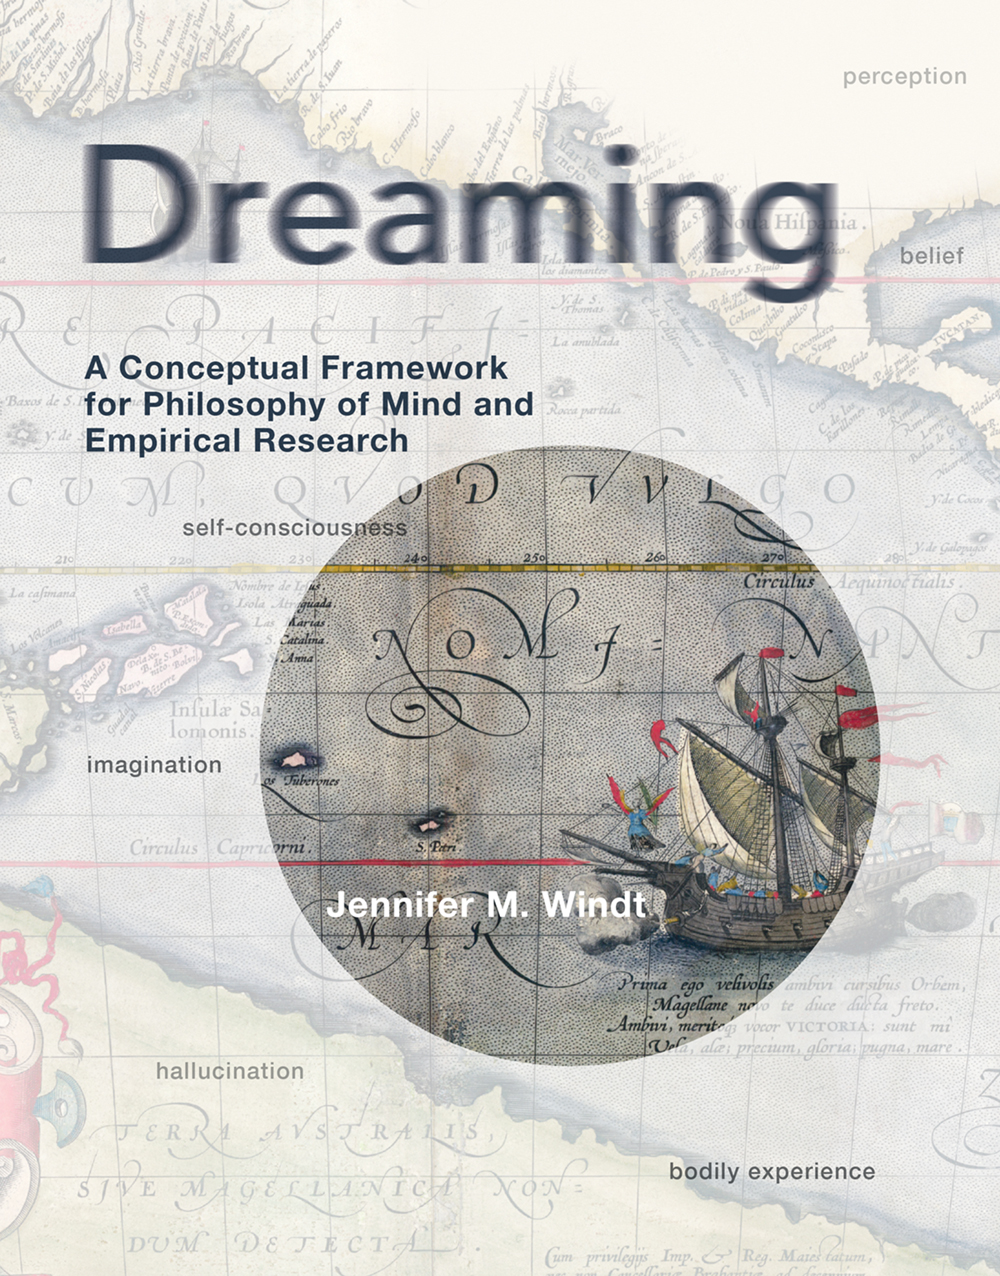 56a8dafa57a Re-)mapping the concept of dreaming – The Brains Blog